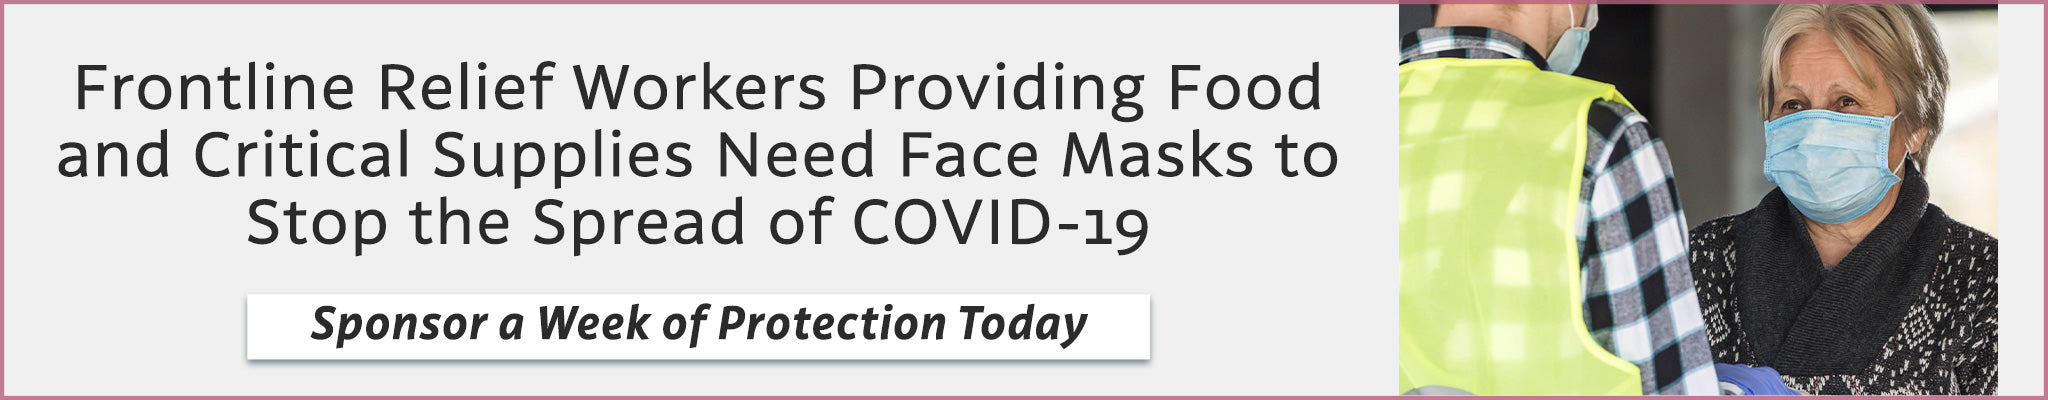 Frontline Relief Workers Providing Food and Critical Supplies Need Face Masks to Stop the Spread of COVID-19 | Sponsor a Week of Protection Today